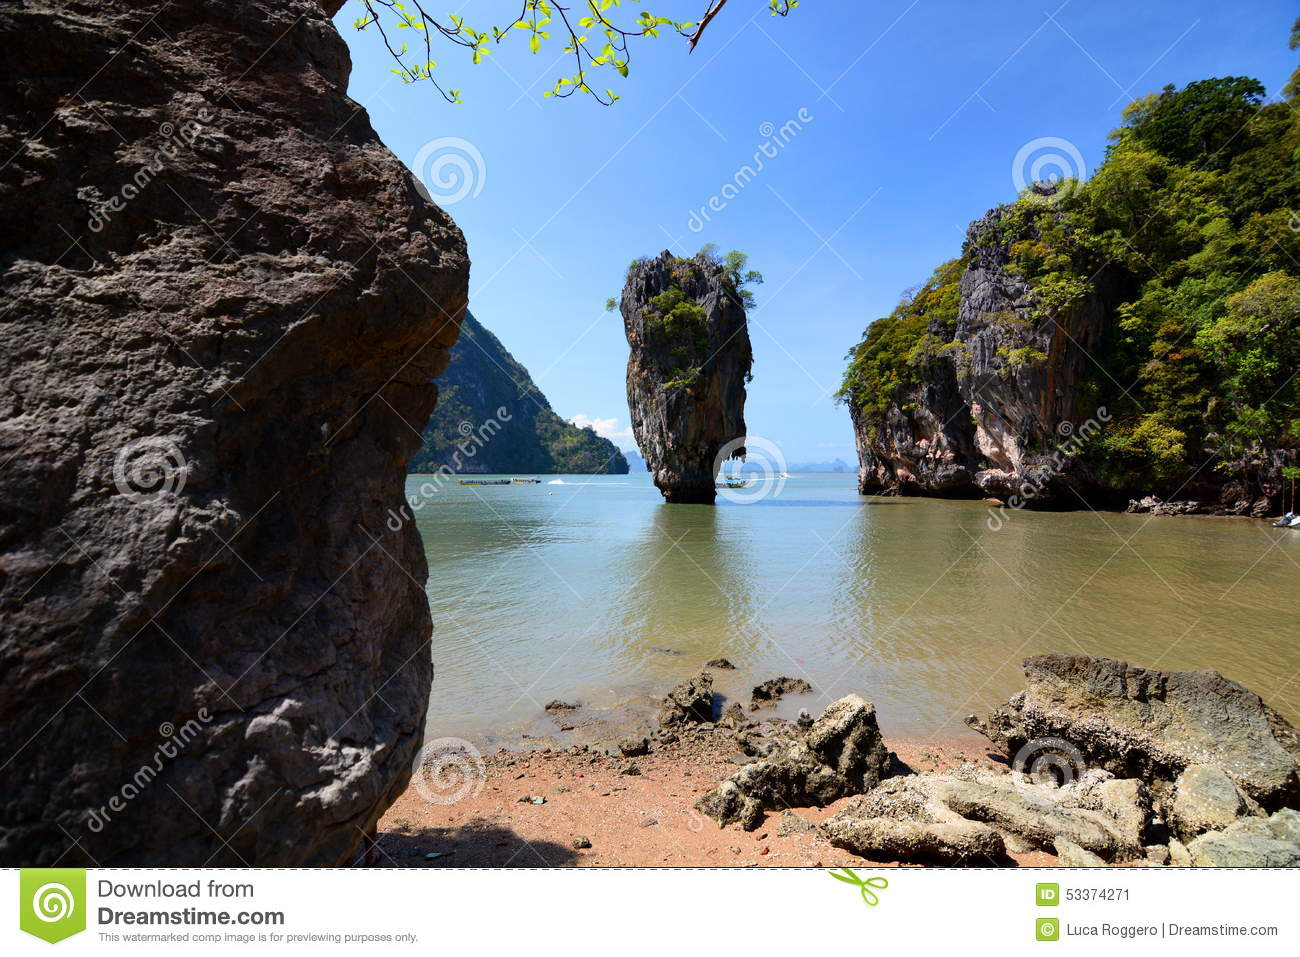 Khao Phing Kan clipart #17, Download drawings